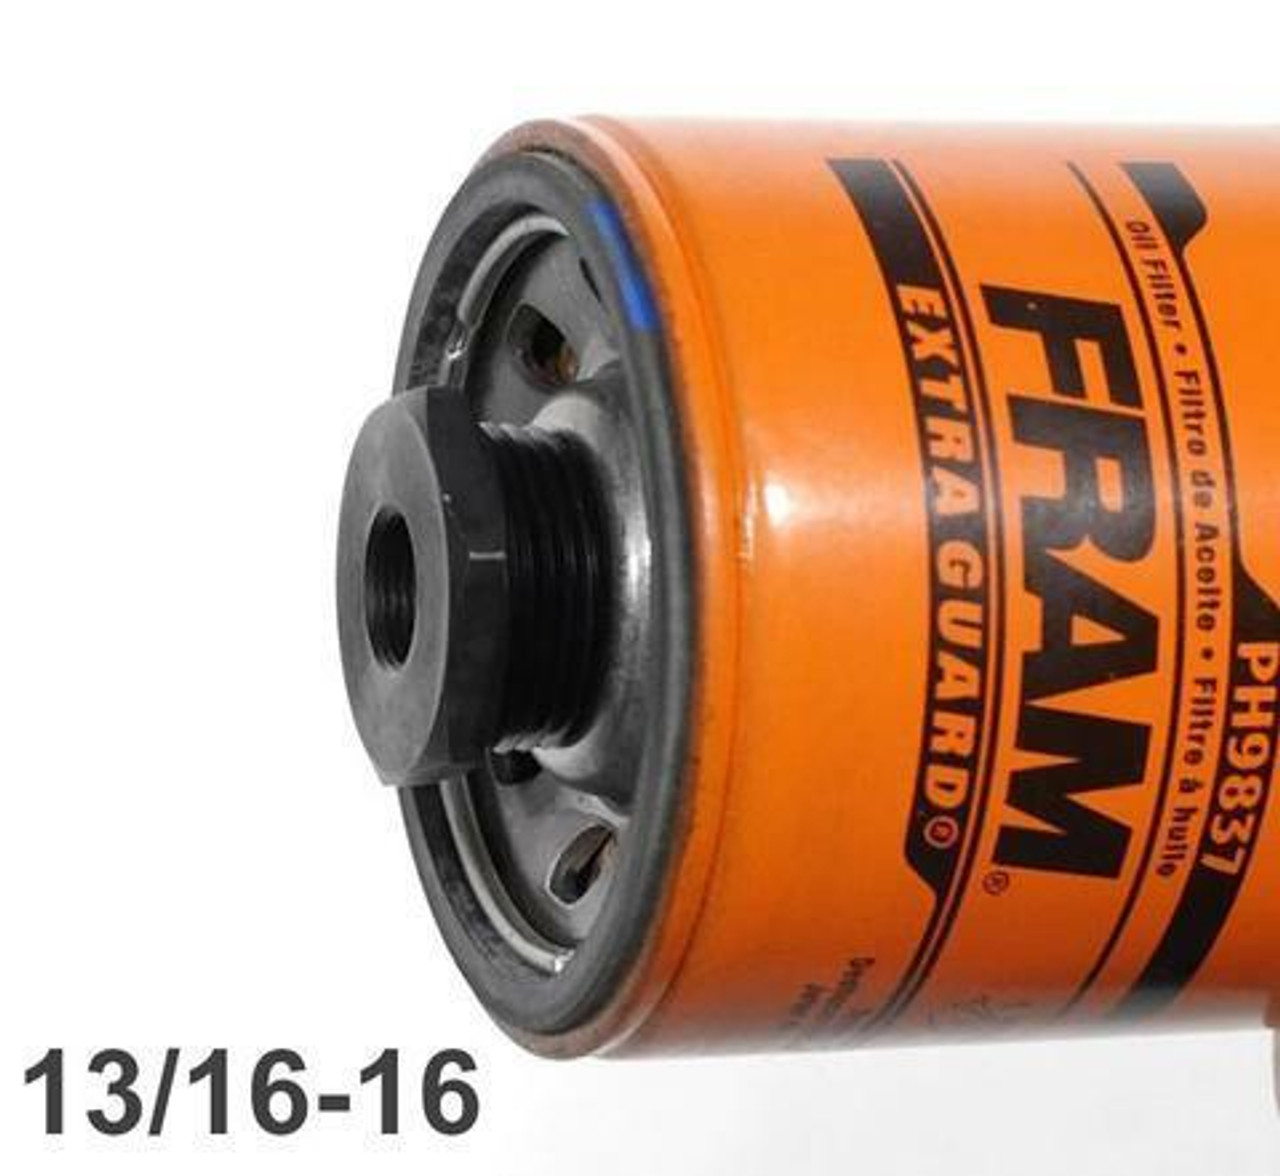 FIREHOG FireHog System MOD-TA 5/8-24 TO 13/16-16 Muzzle Thread Adapter Solvent Trap adapter